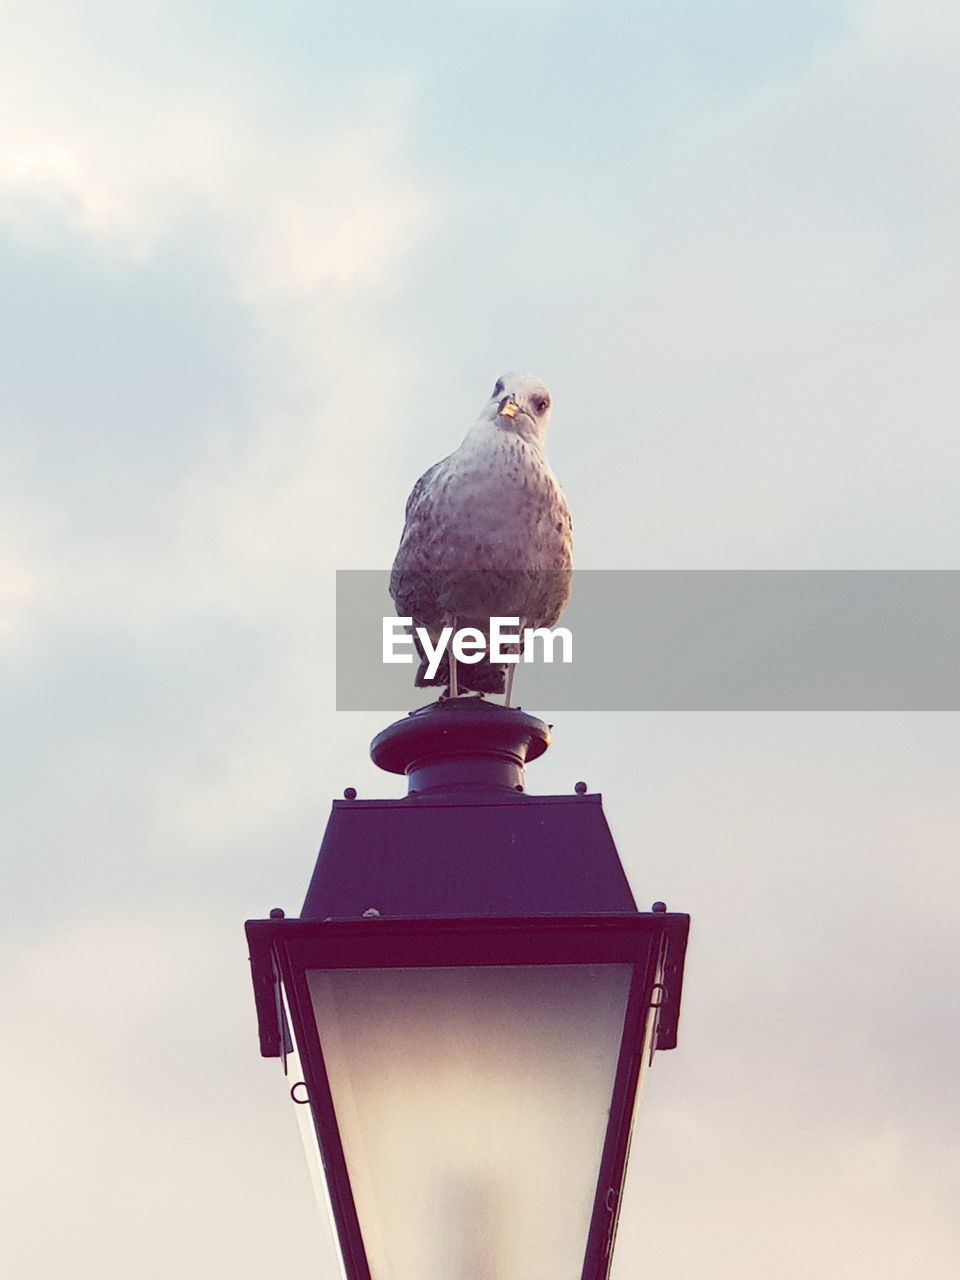 bird, animal themes, animal, animal wildlife, perching, one animal, sky, vertebrate, animals in the wild, nature, low angle view, day, cloud - sky, no people, outdoors, seagull, bird of prey, dove - bird, metal, zoology, eagle